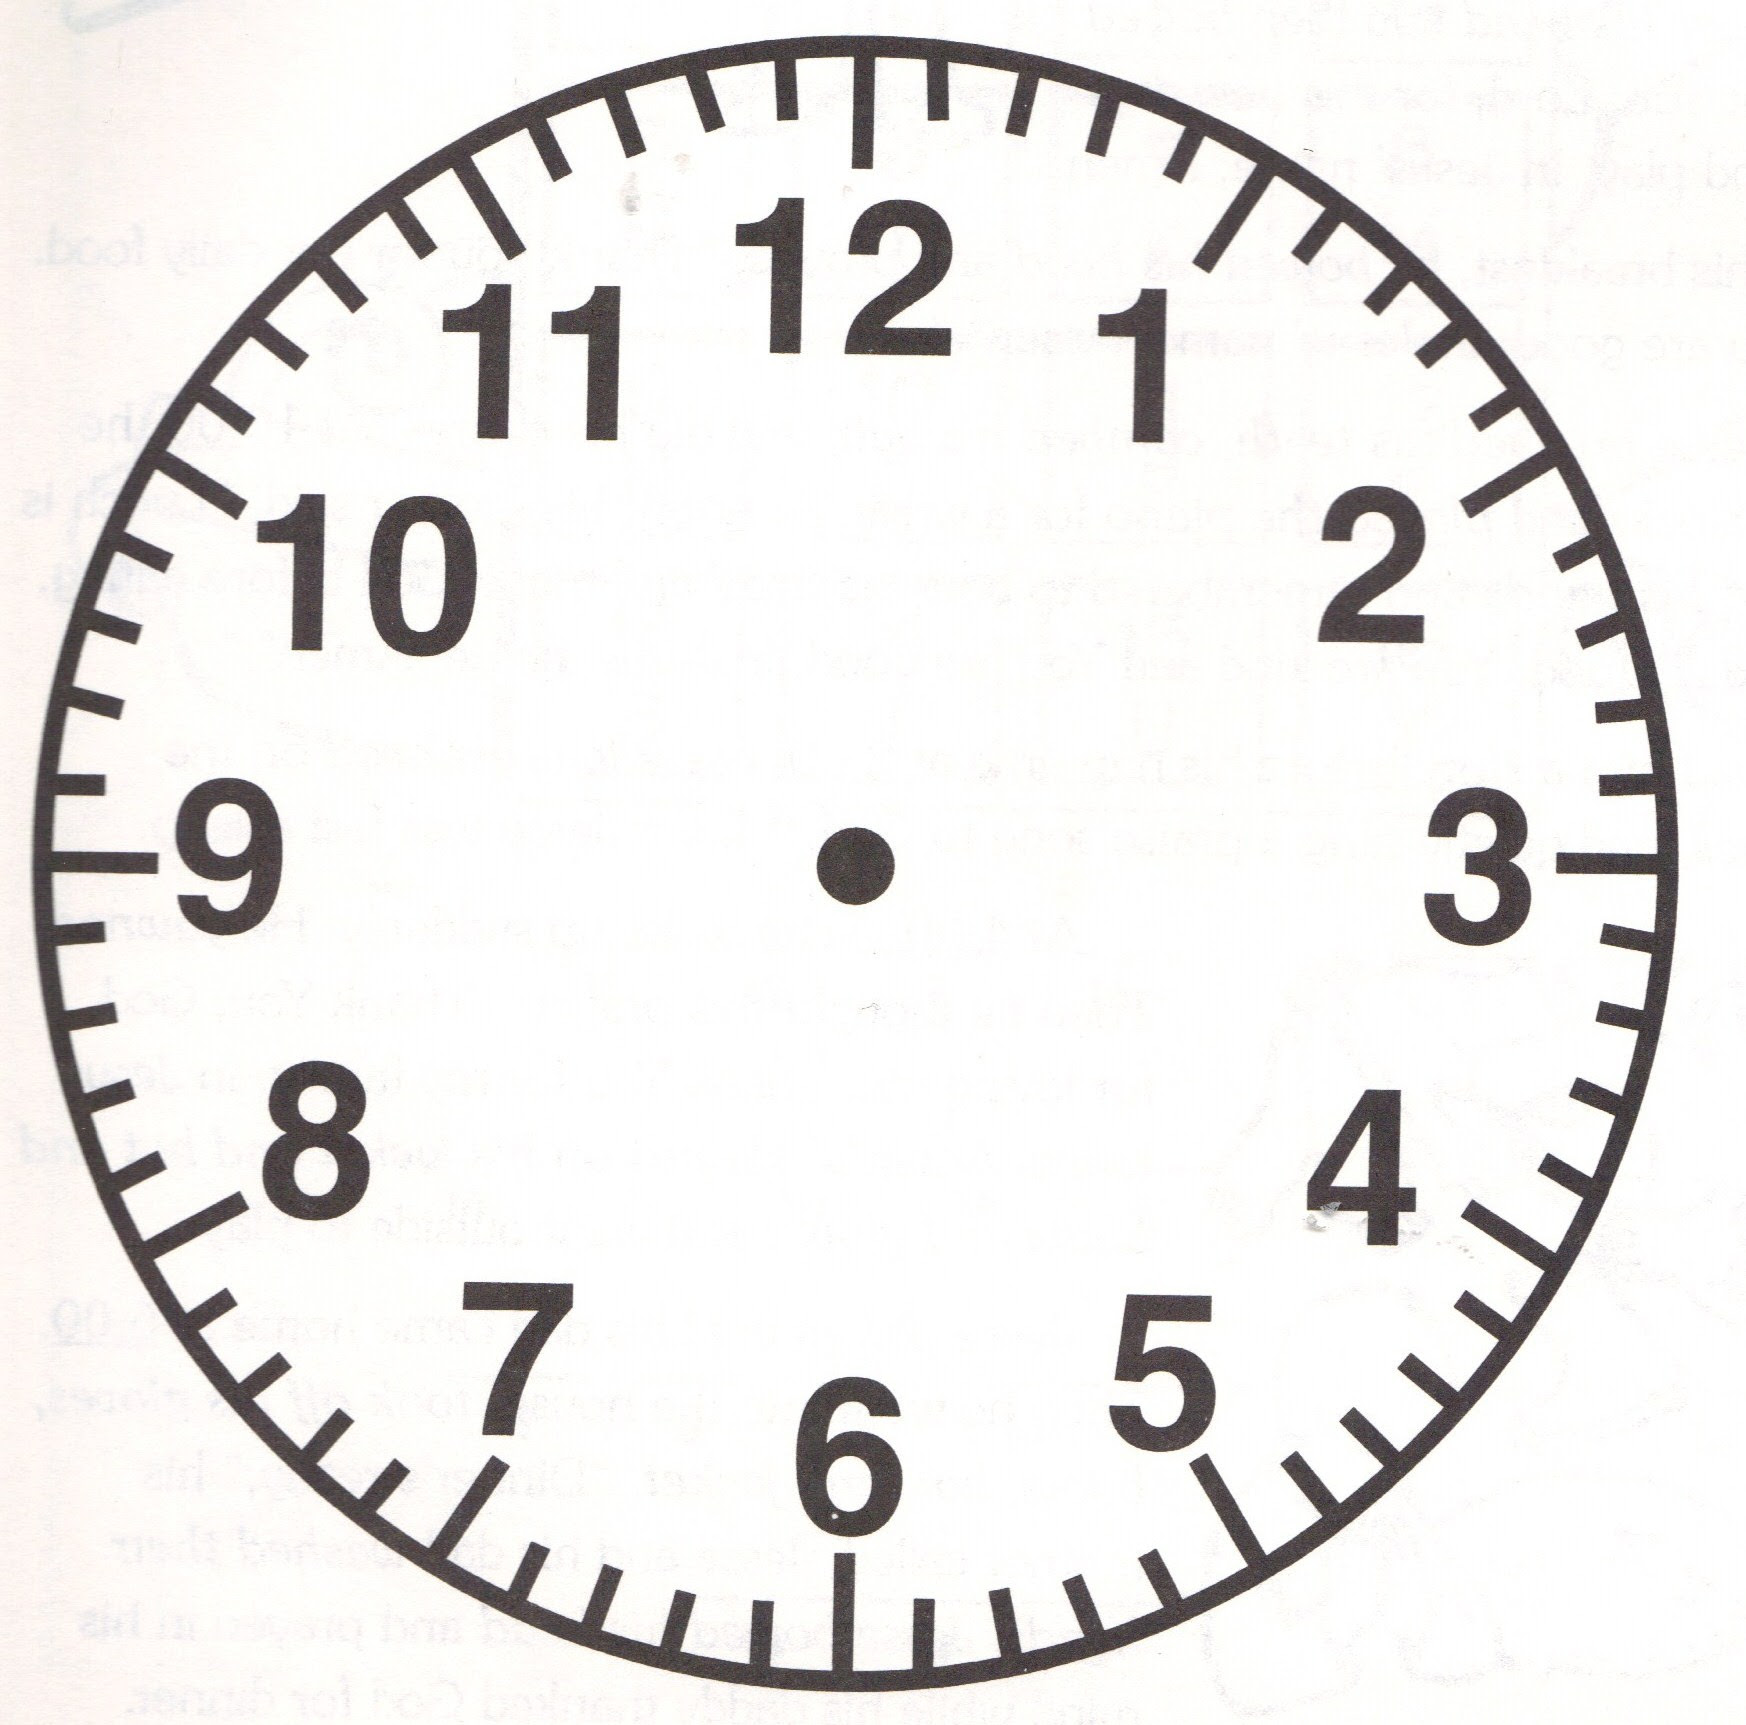 Free Analog Clock Without Hands Download Free Clip Art Free Clip